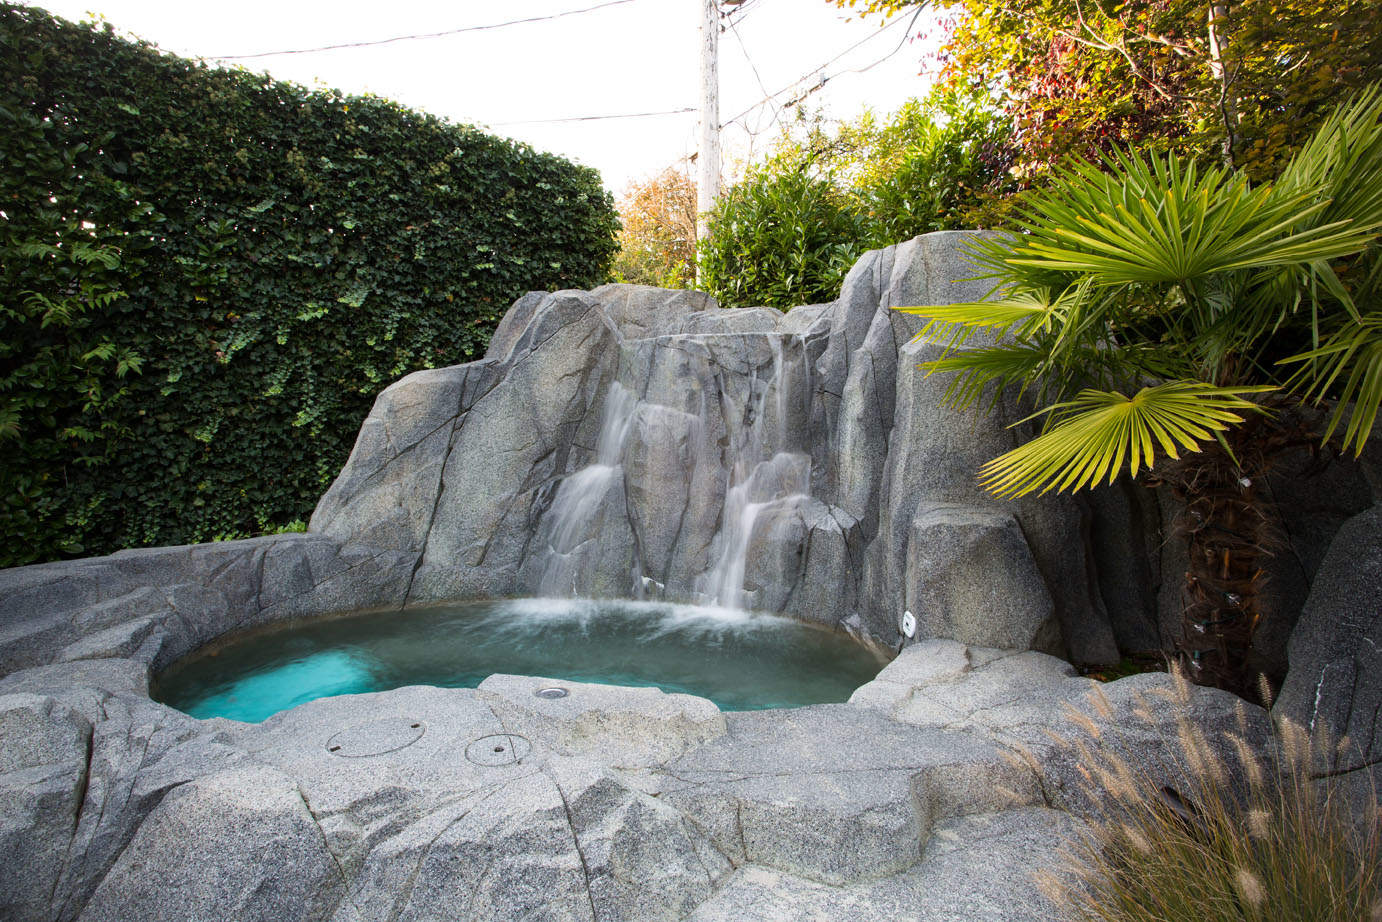 Custom designed swimming pool with a waterfall feature